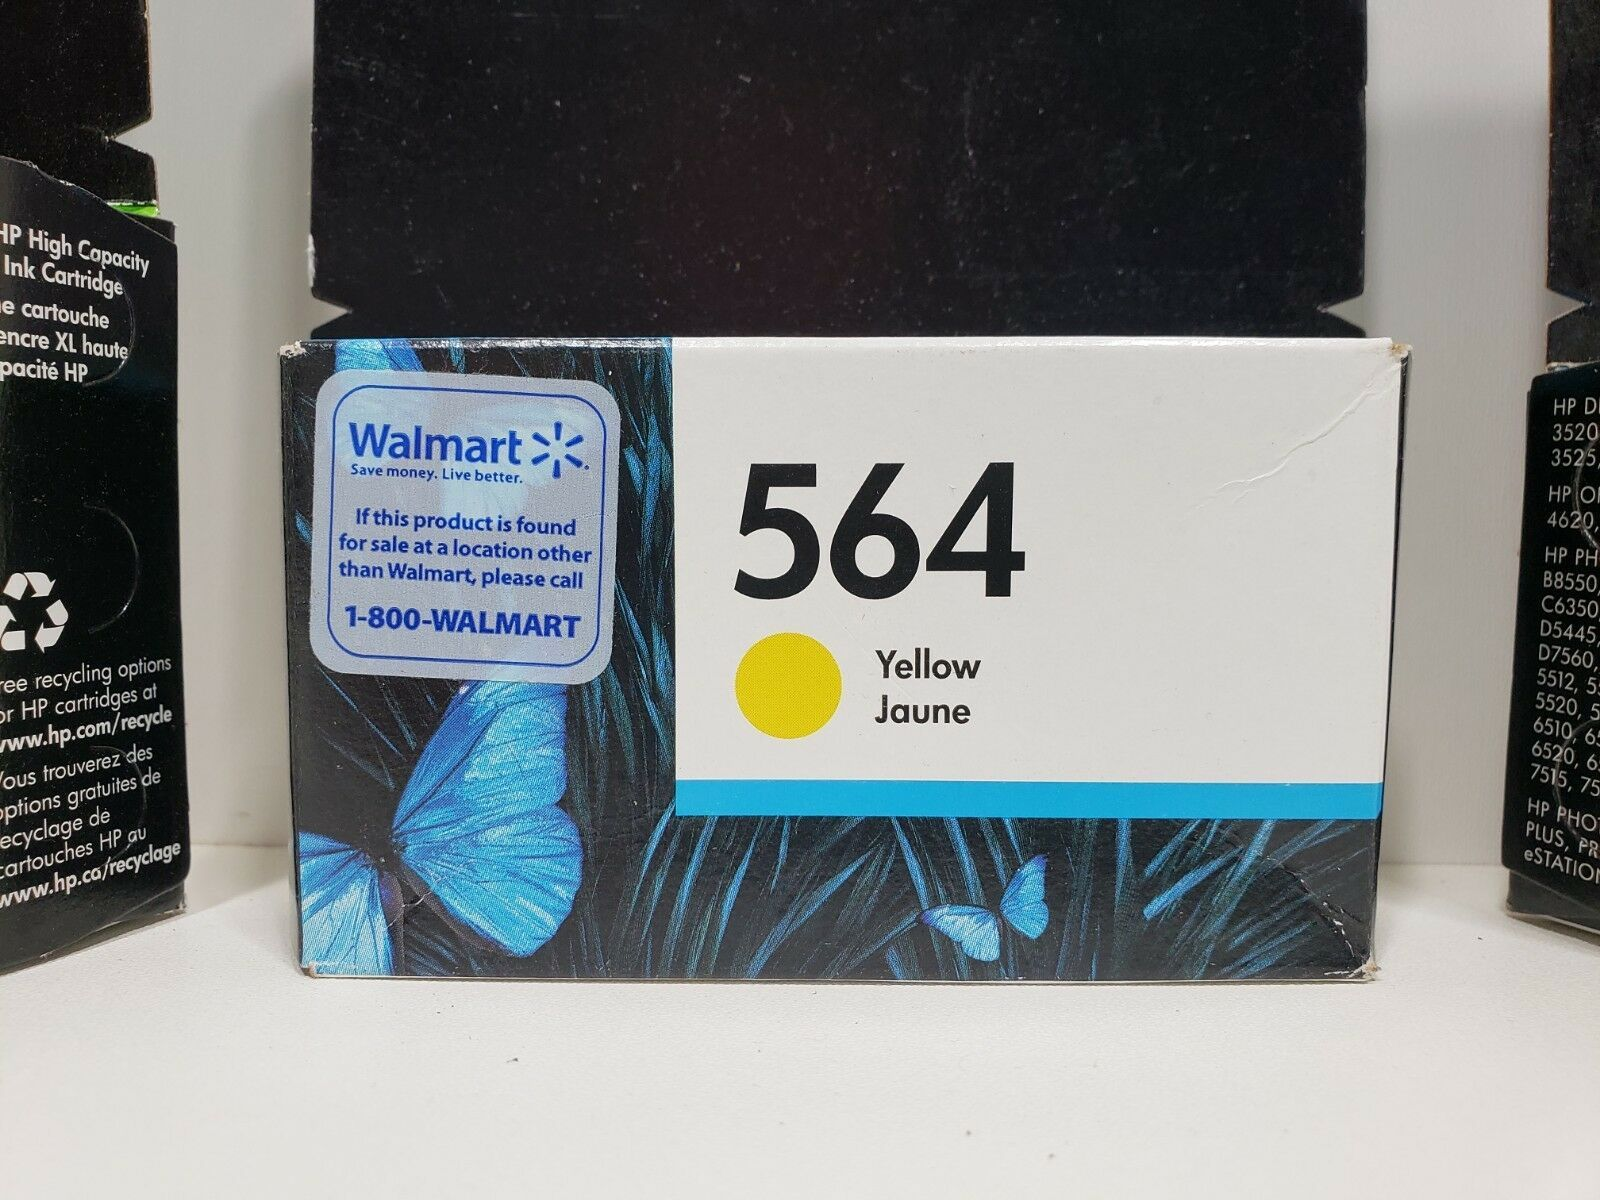 HP 564 3 Ink Cartridges. 2 Expired 2018, 1 Expires Feb. 2019. Factory Sealed image 5